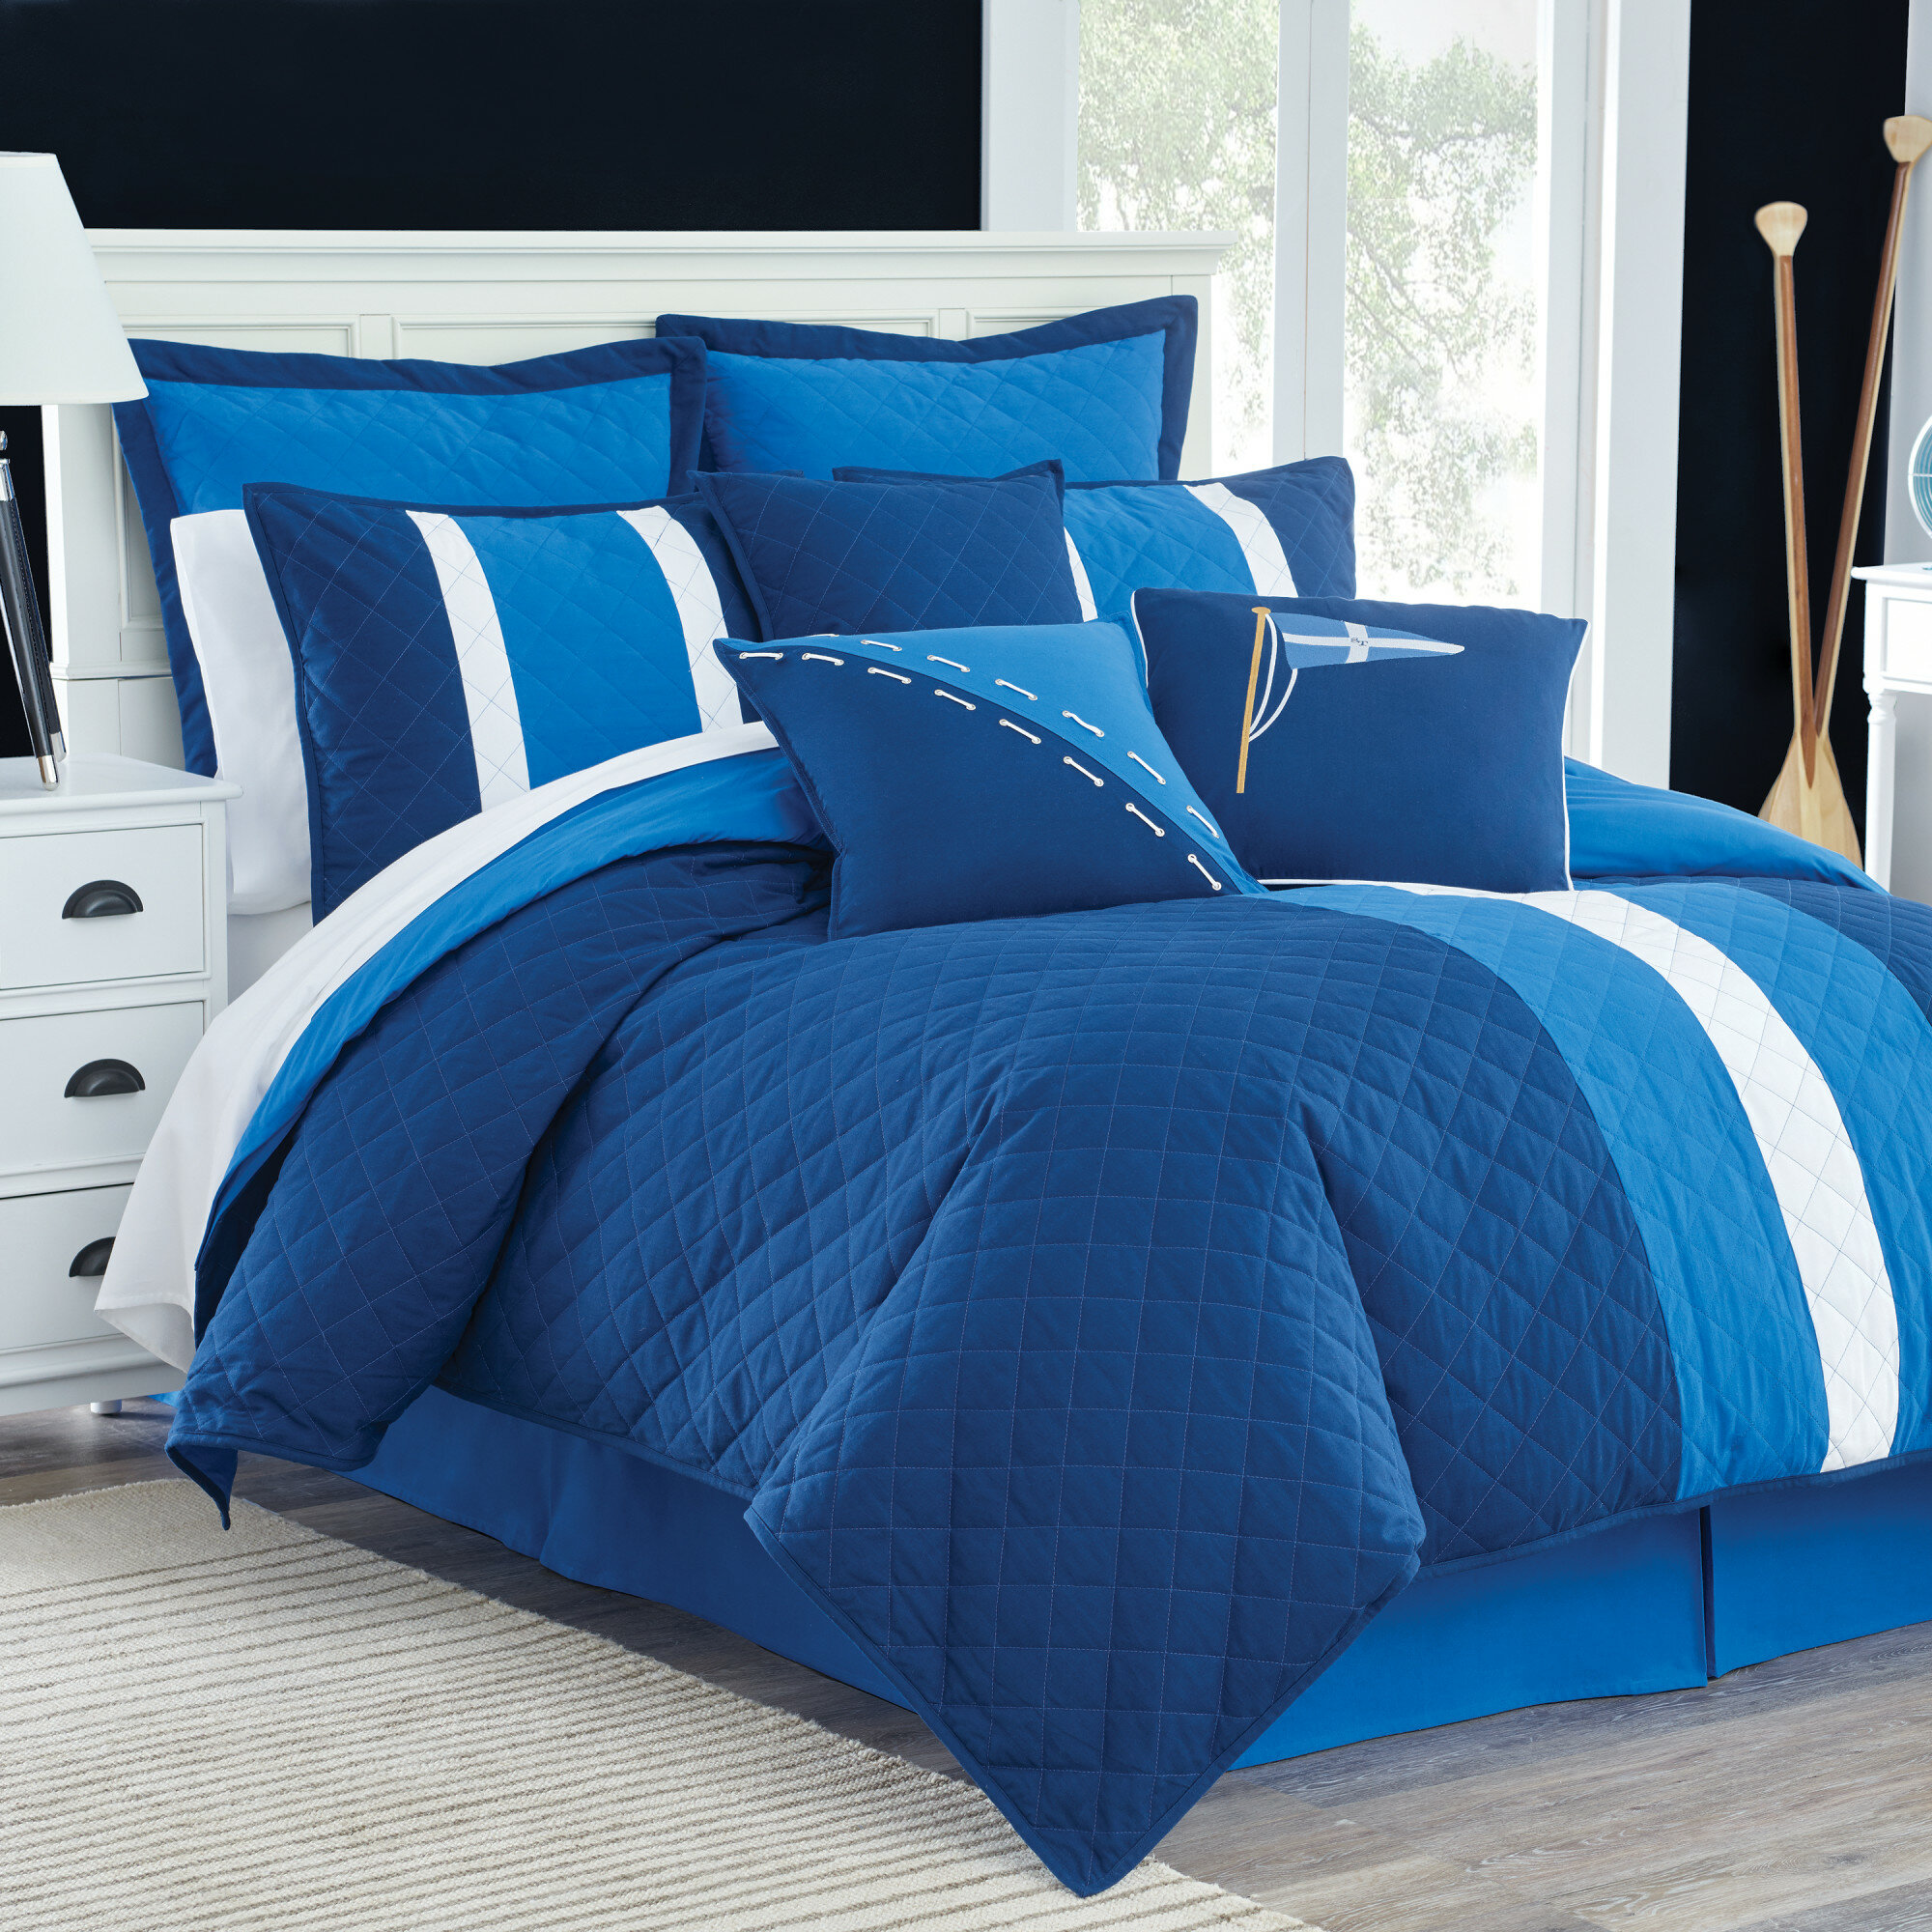 and viralizam belk bedding gallery southern americana bed comforter chino tide